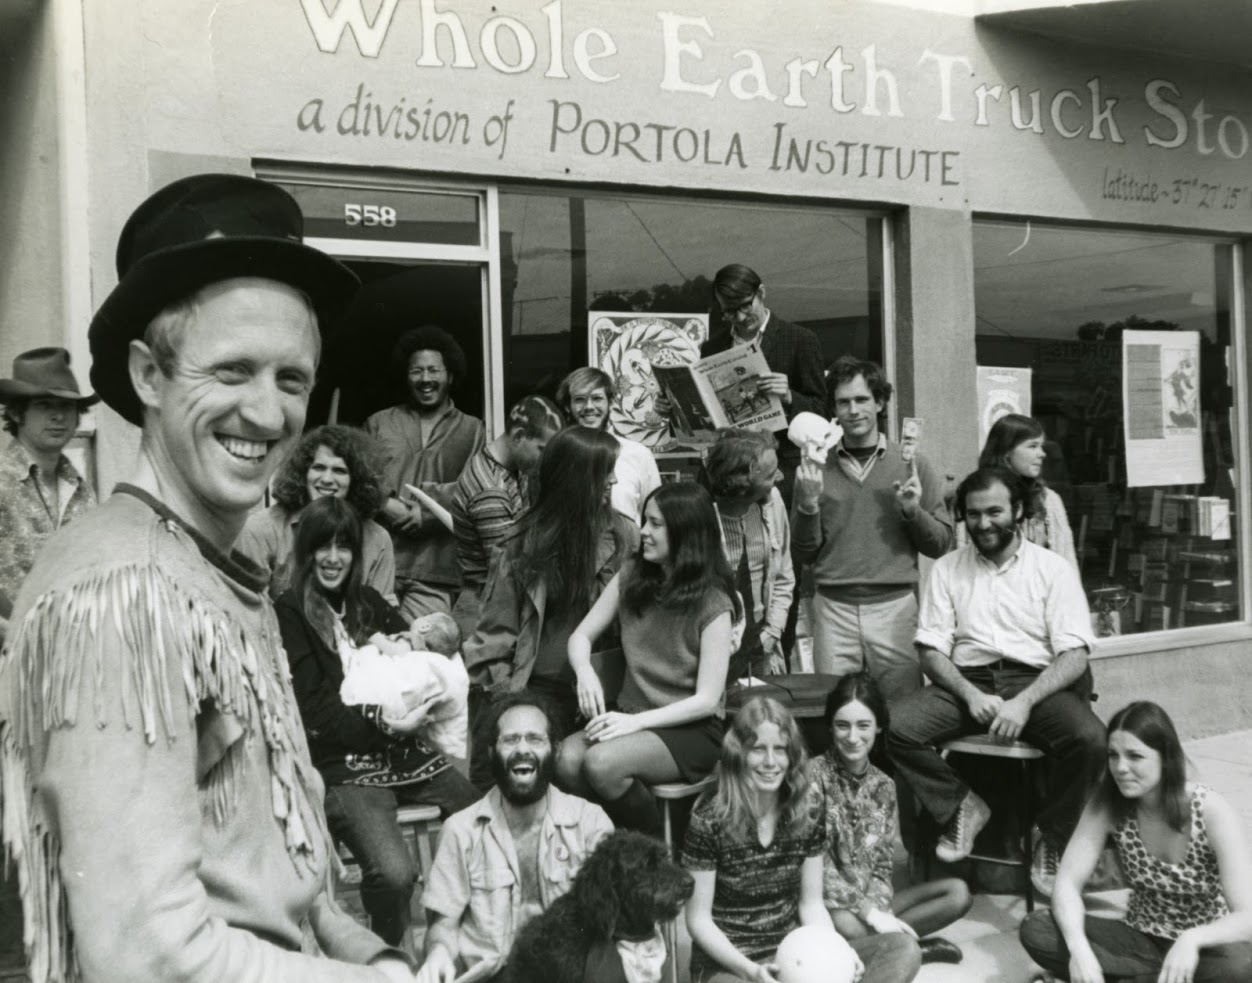 Stewart Brand & Whole Earth team, journal of wild culture, ©2020